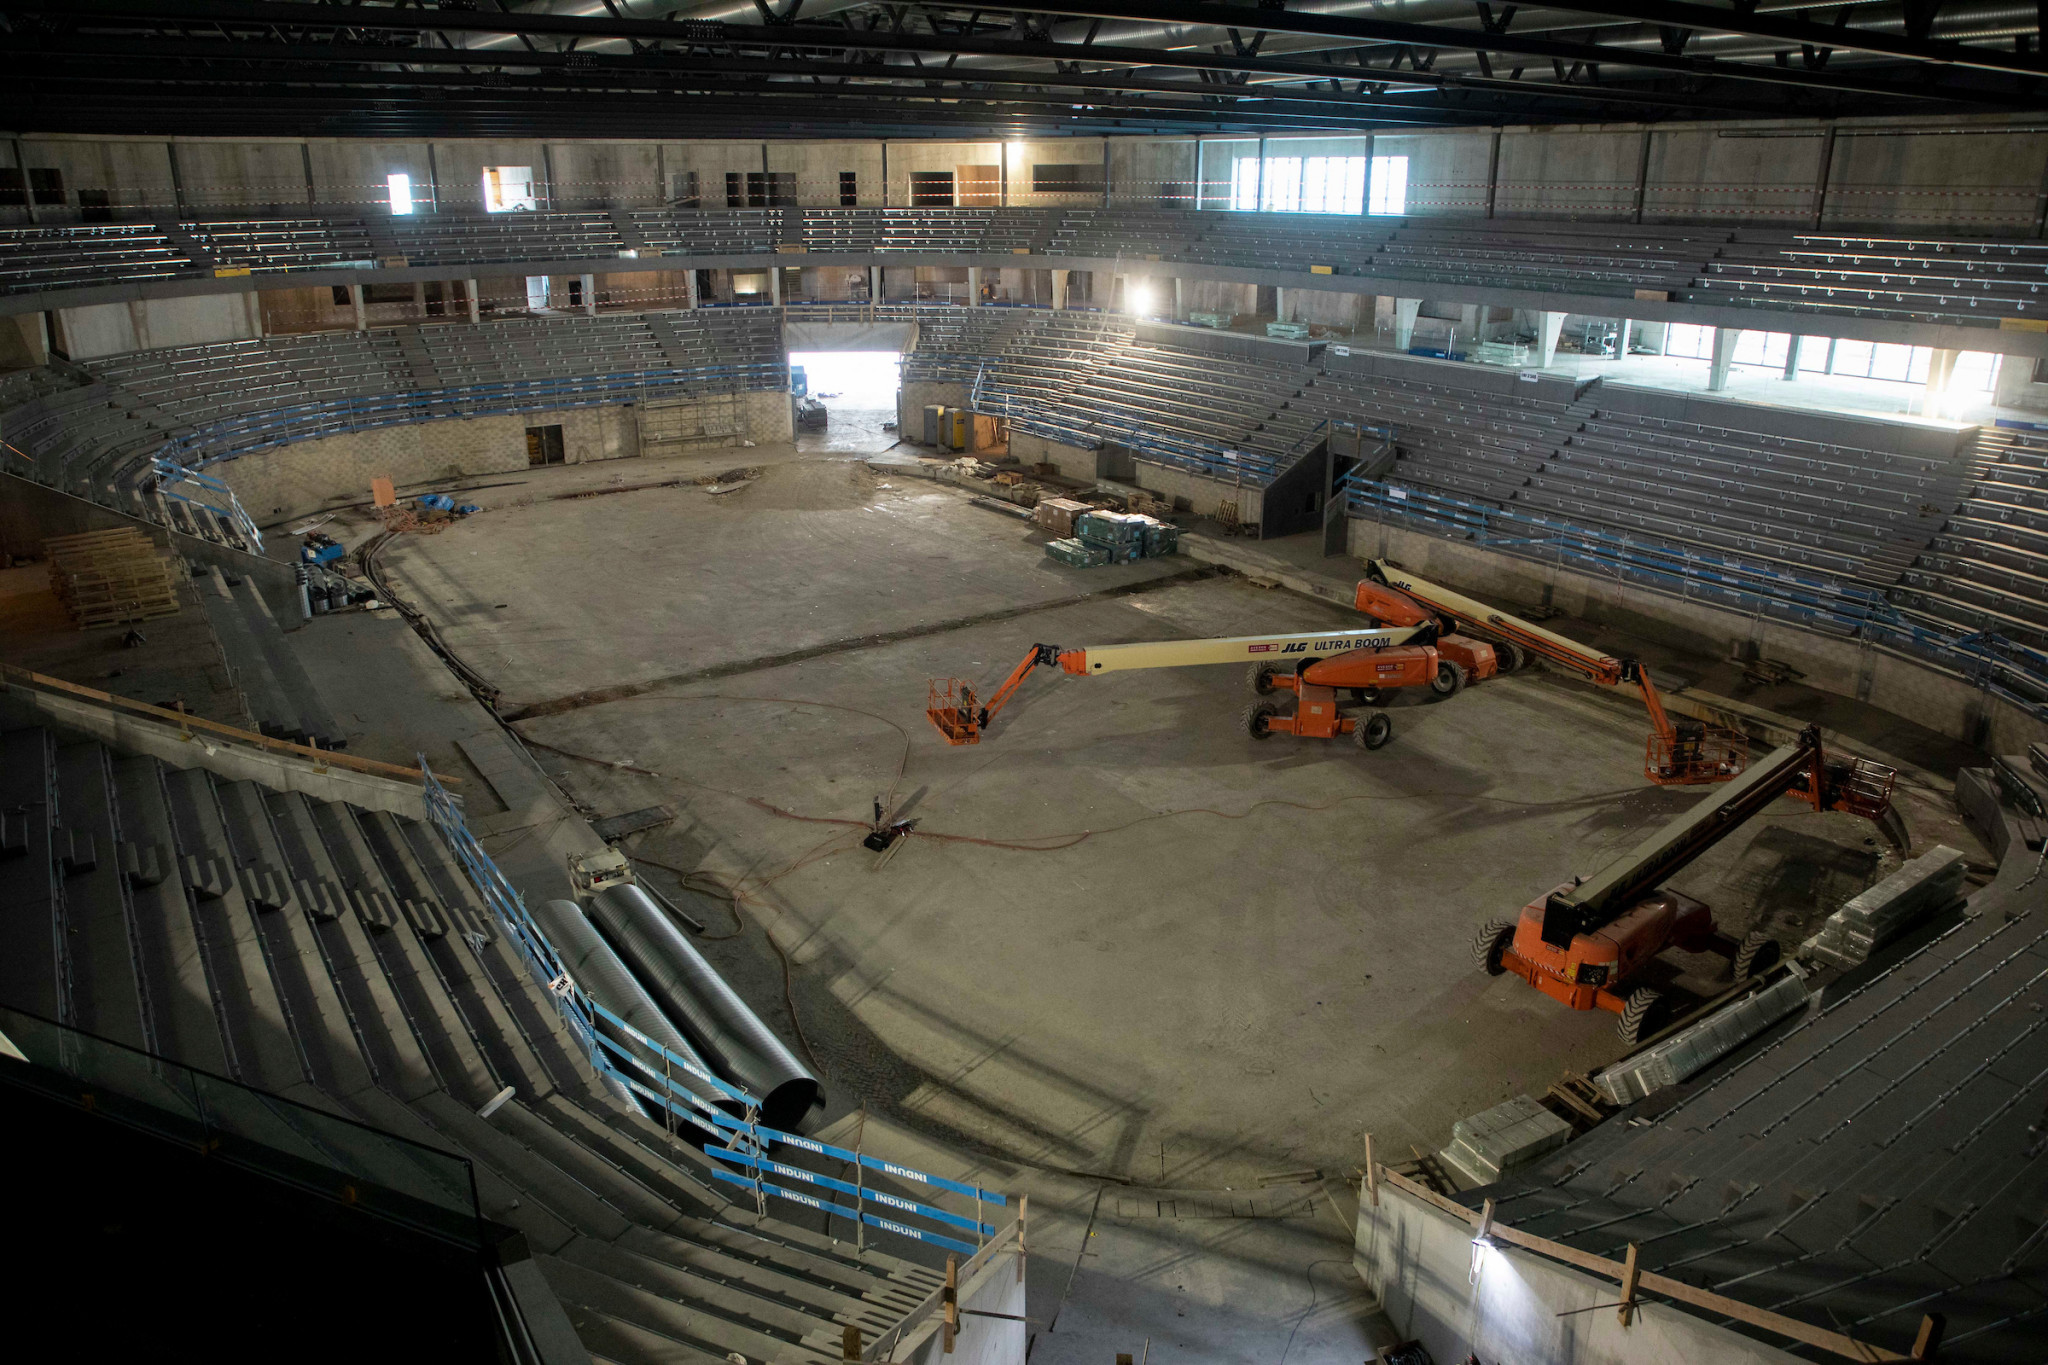 A new ice hockey arena, which will also host the Opening Ceremony, is also being built for Lausanne 2020 ©IOC